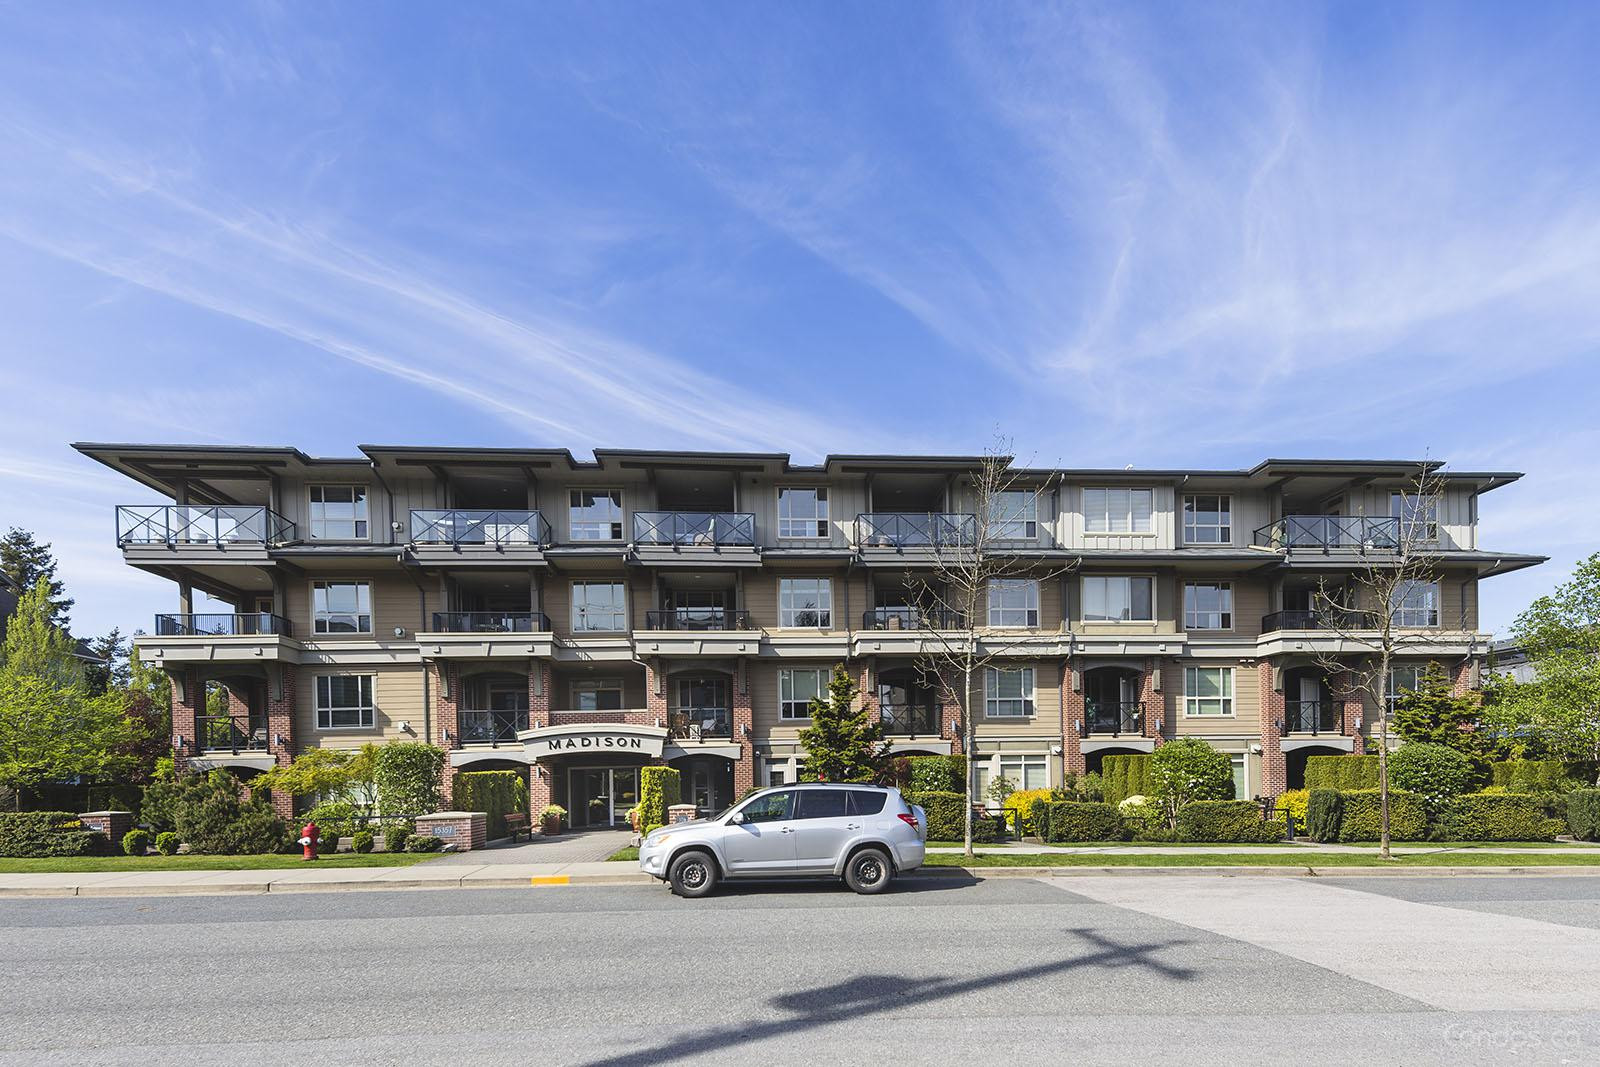 Madison at 15357 17a Ave, Surrey 0